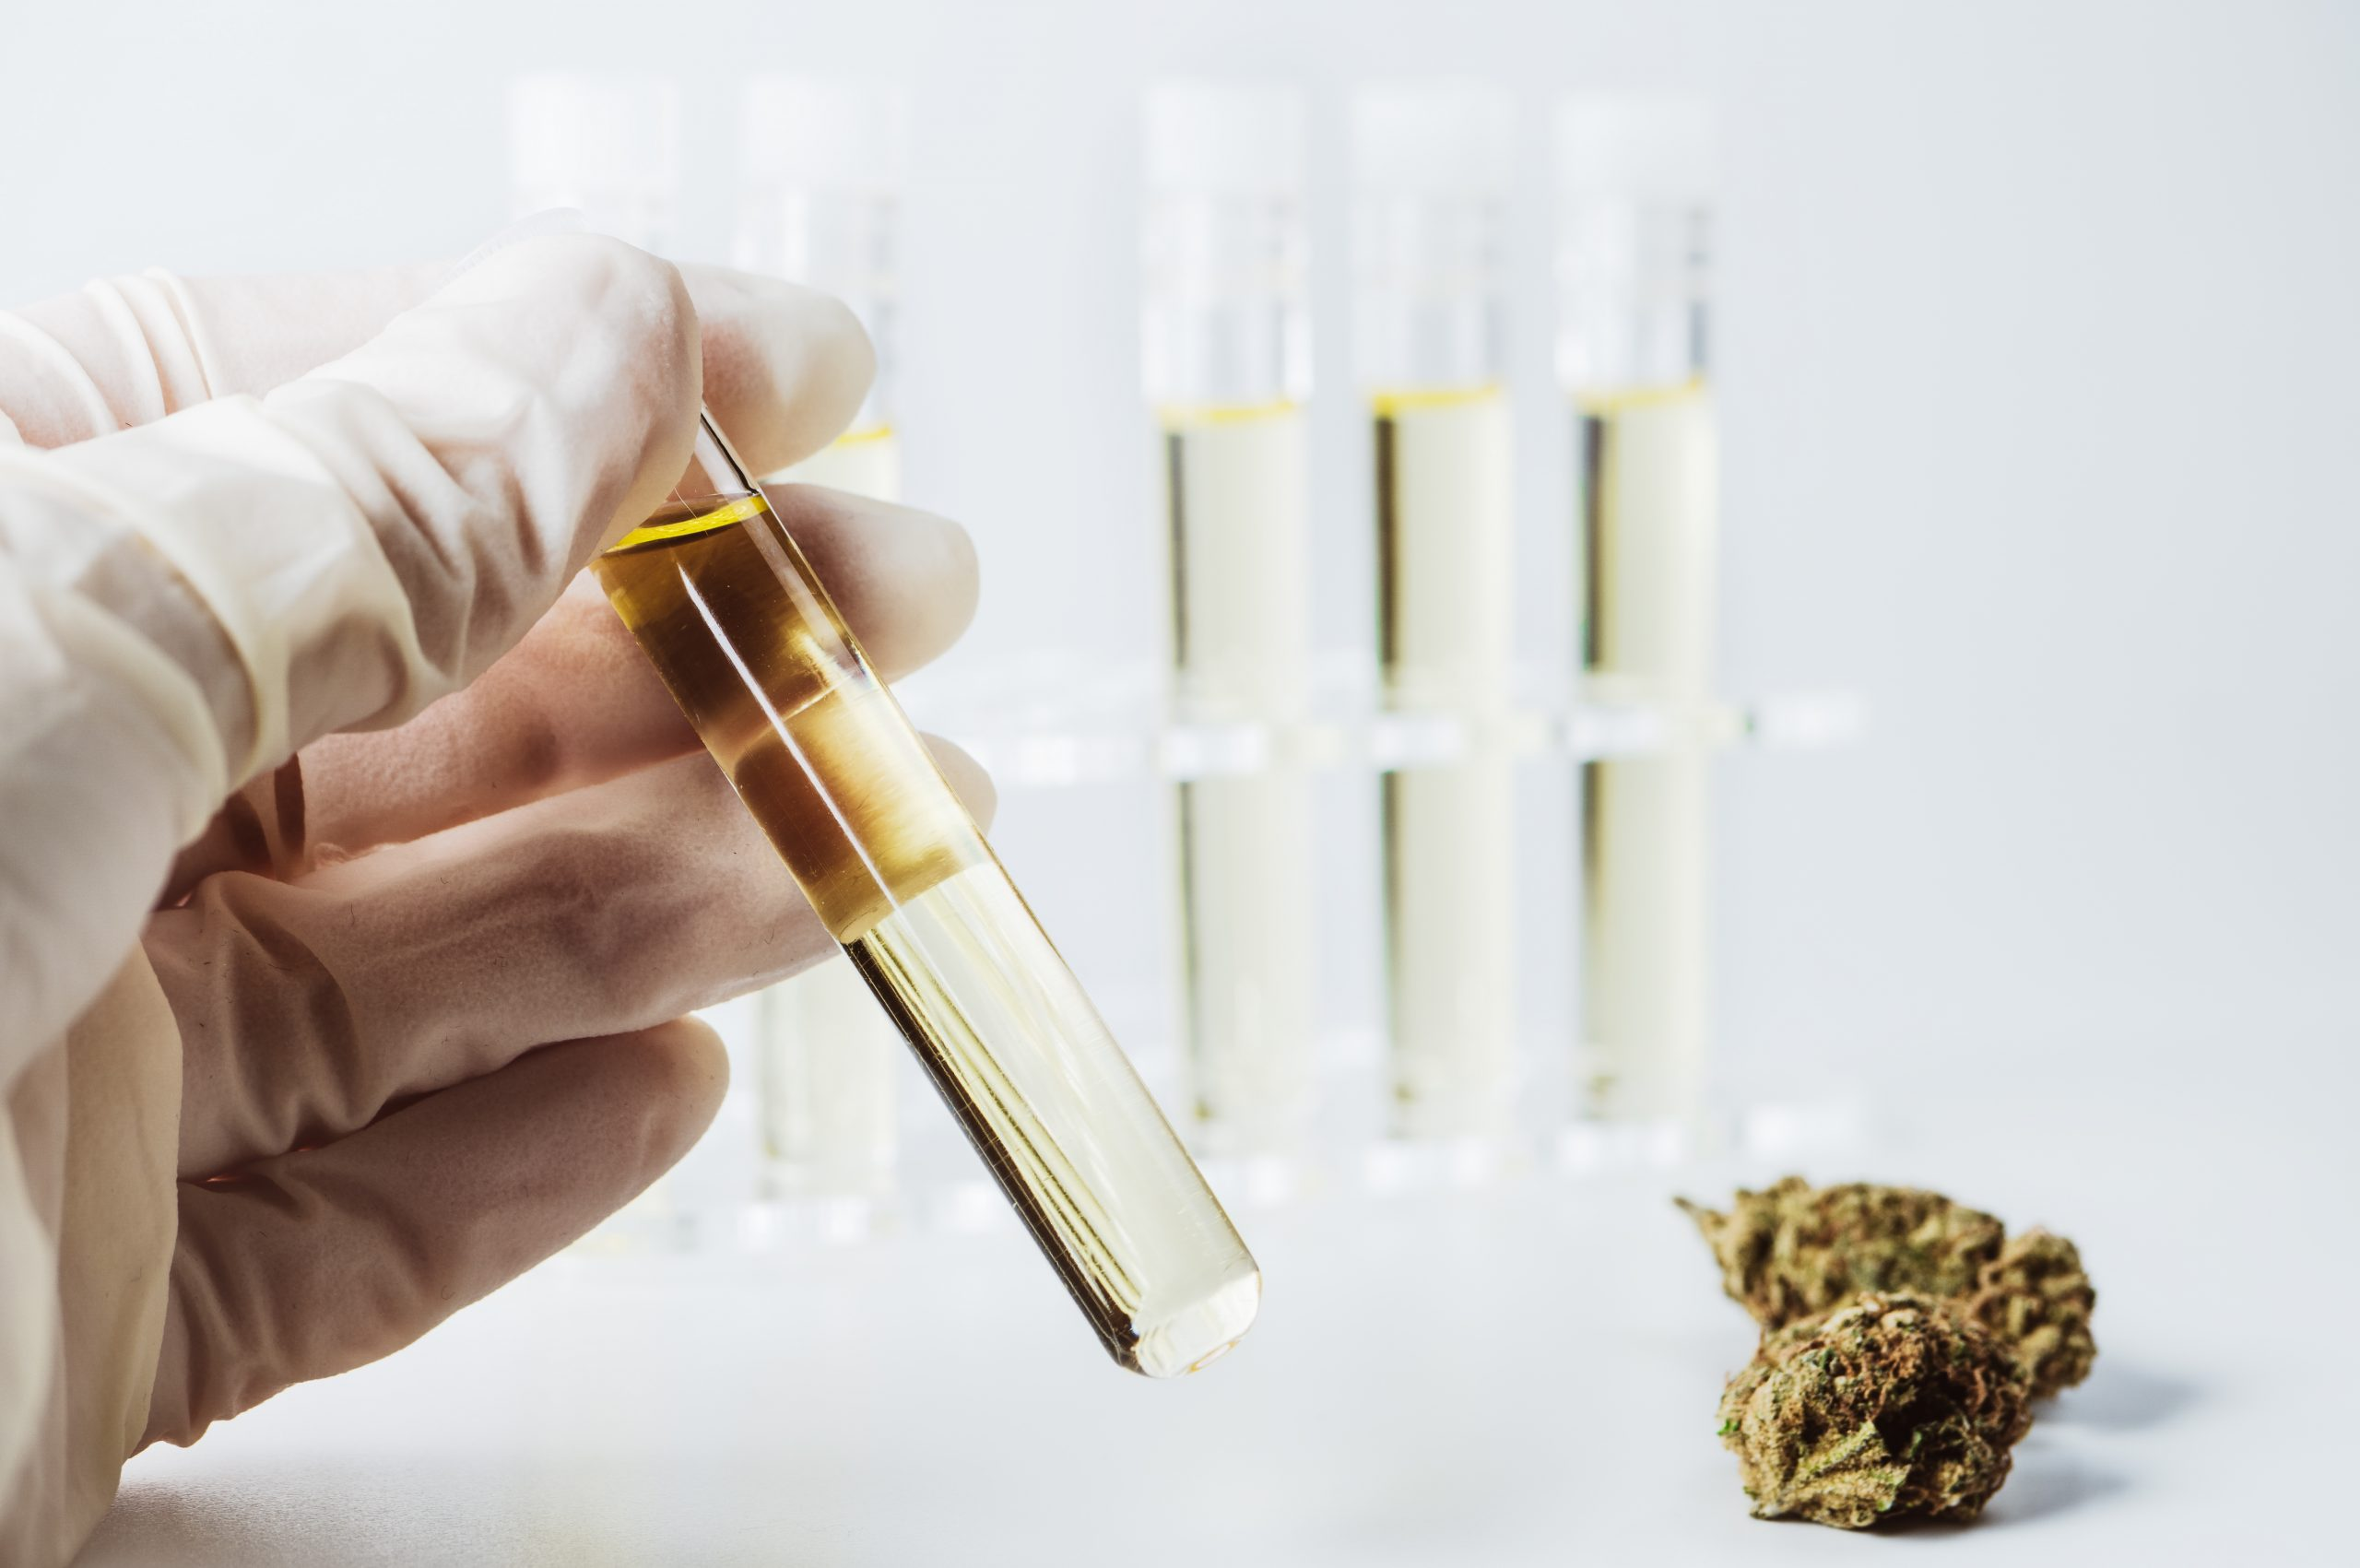 THC Concentration Testing Comes to Texas